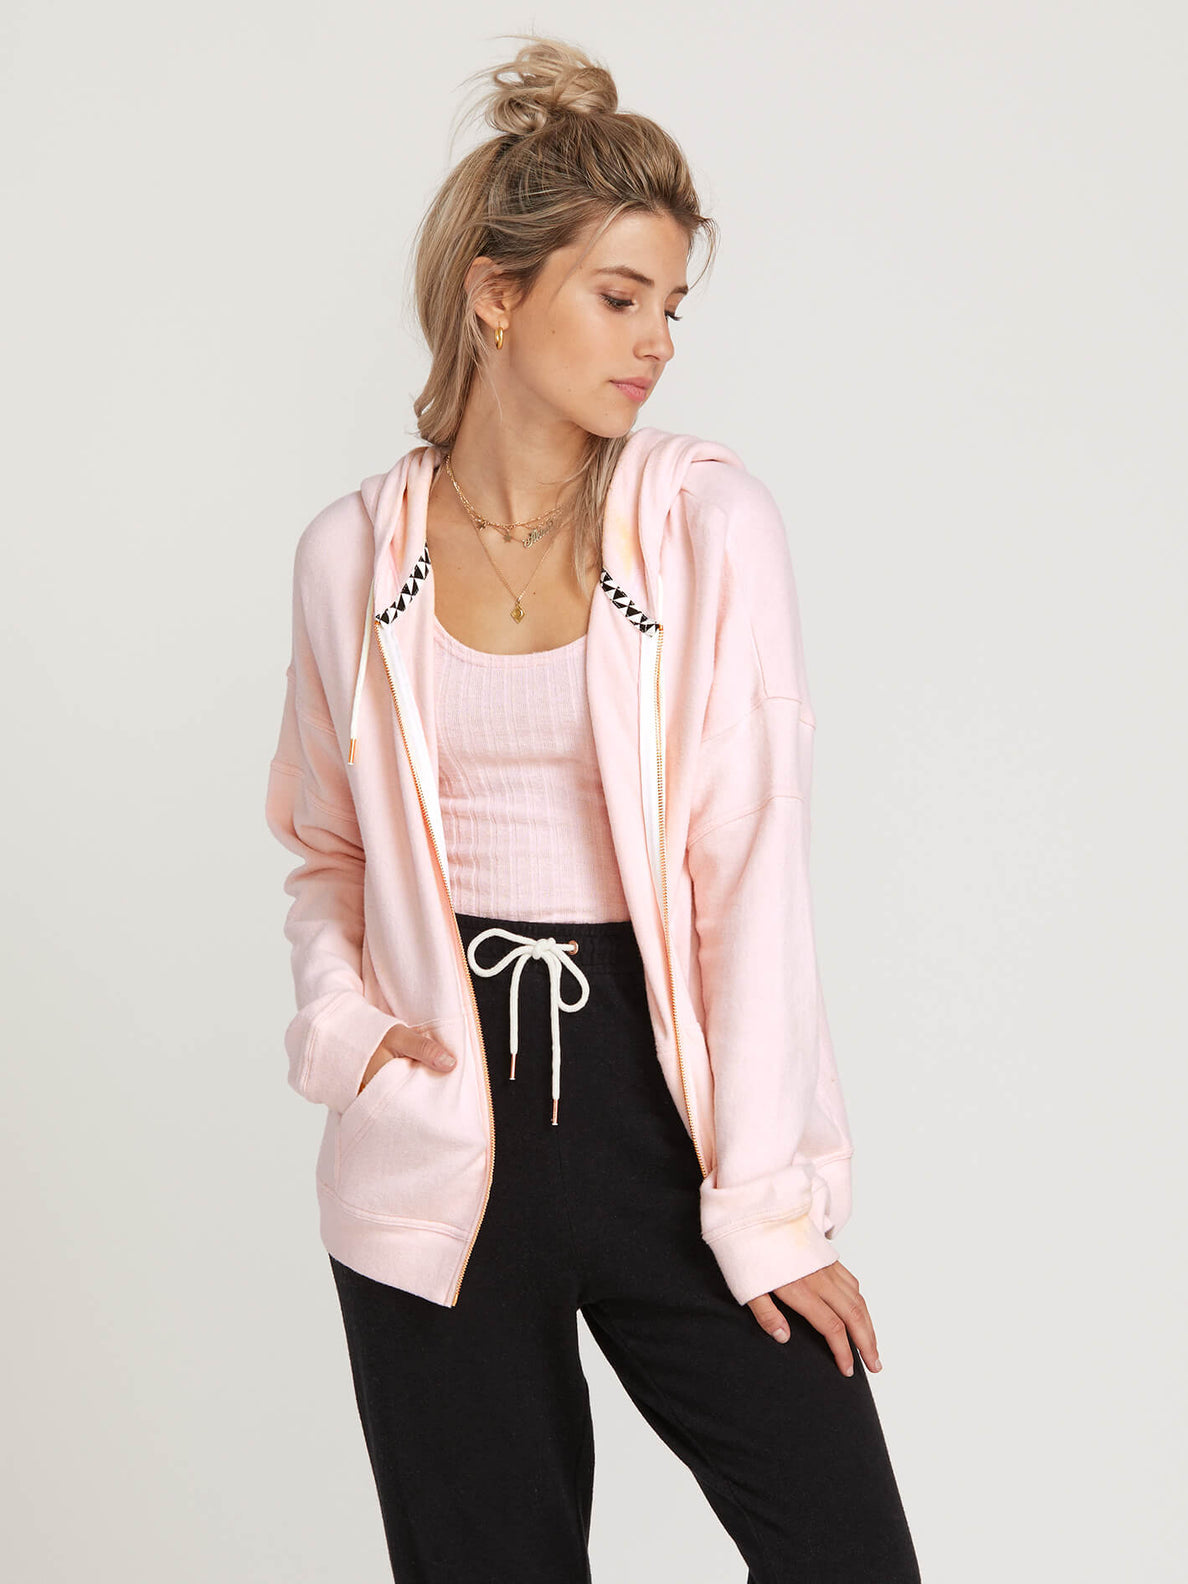 Lived In Lounge Zip Hoodie In Blush Pink, Second Alternate View